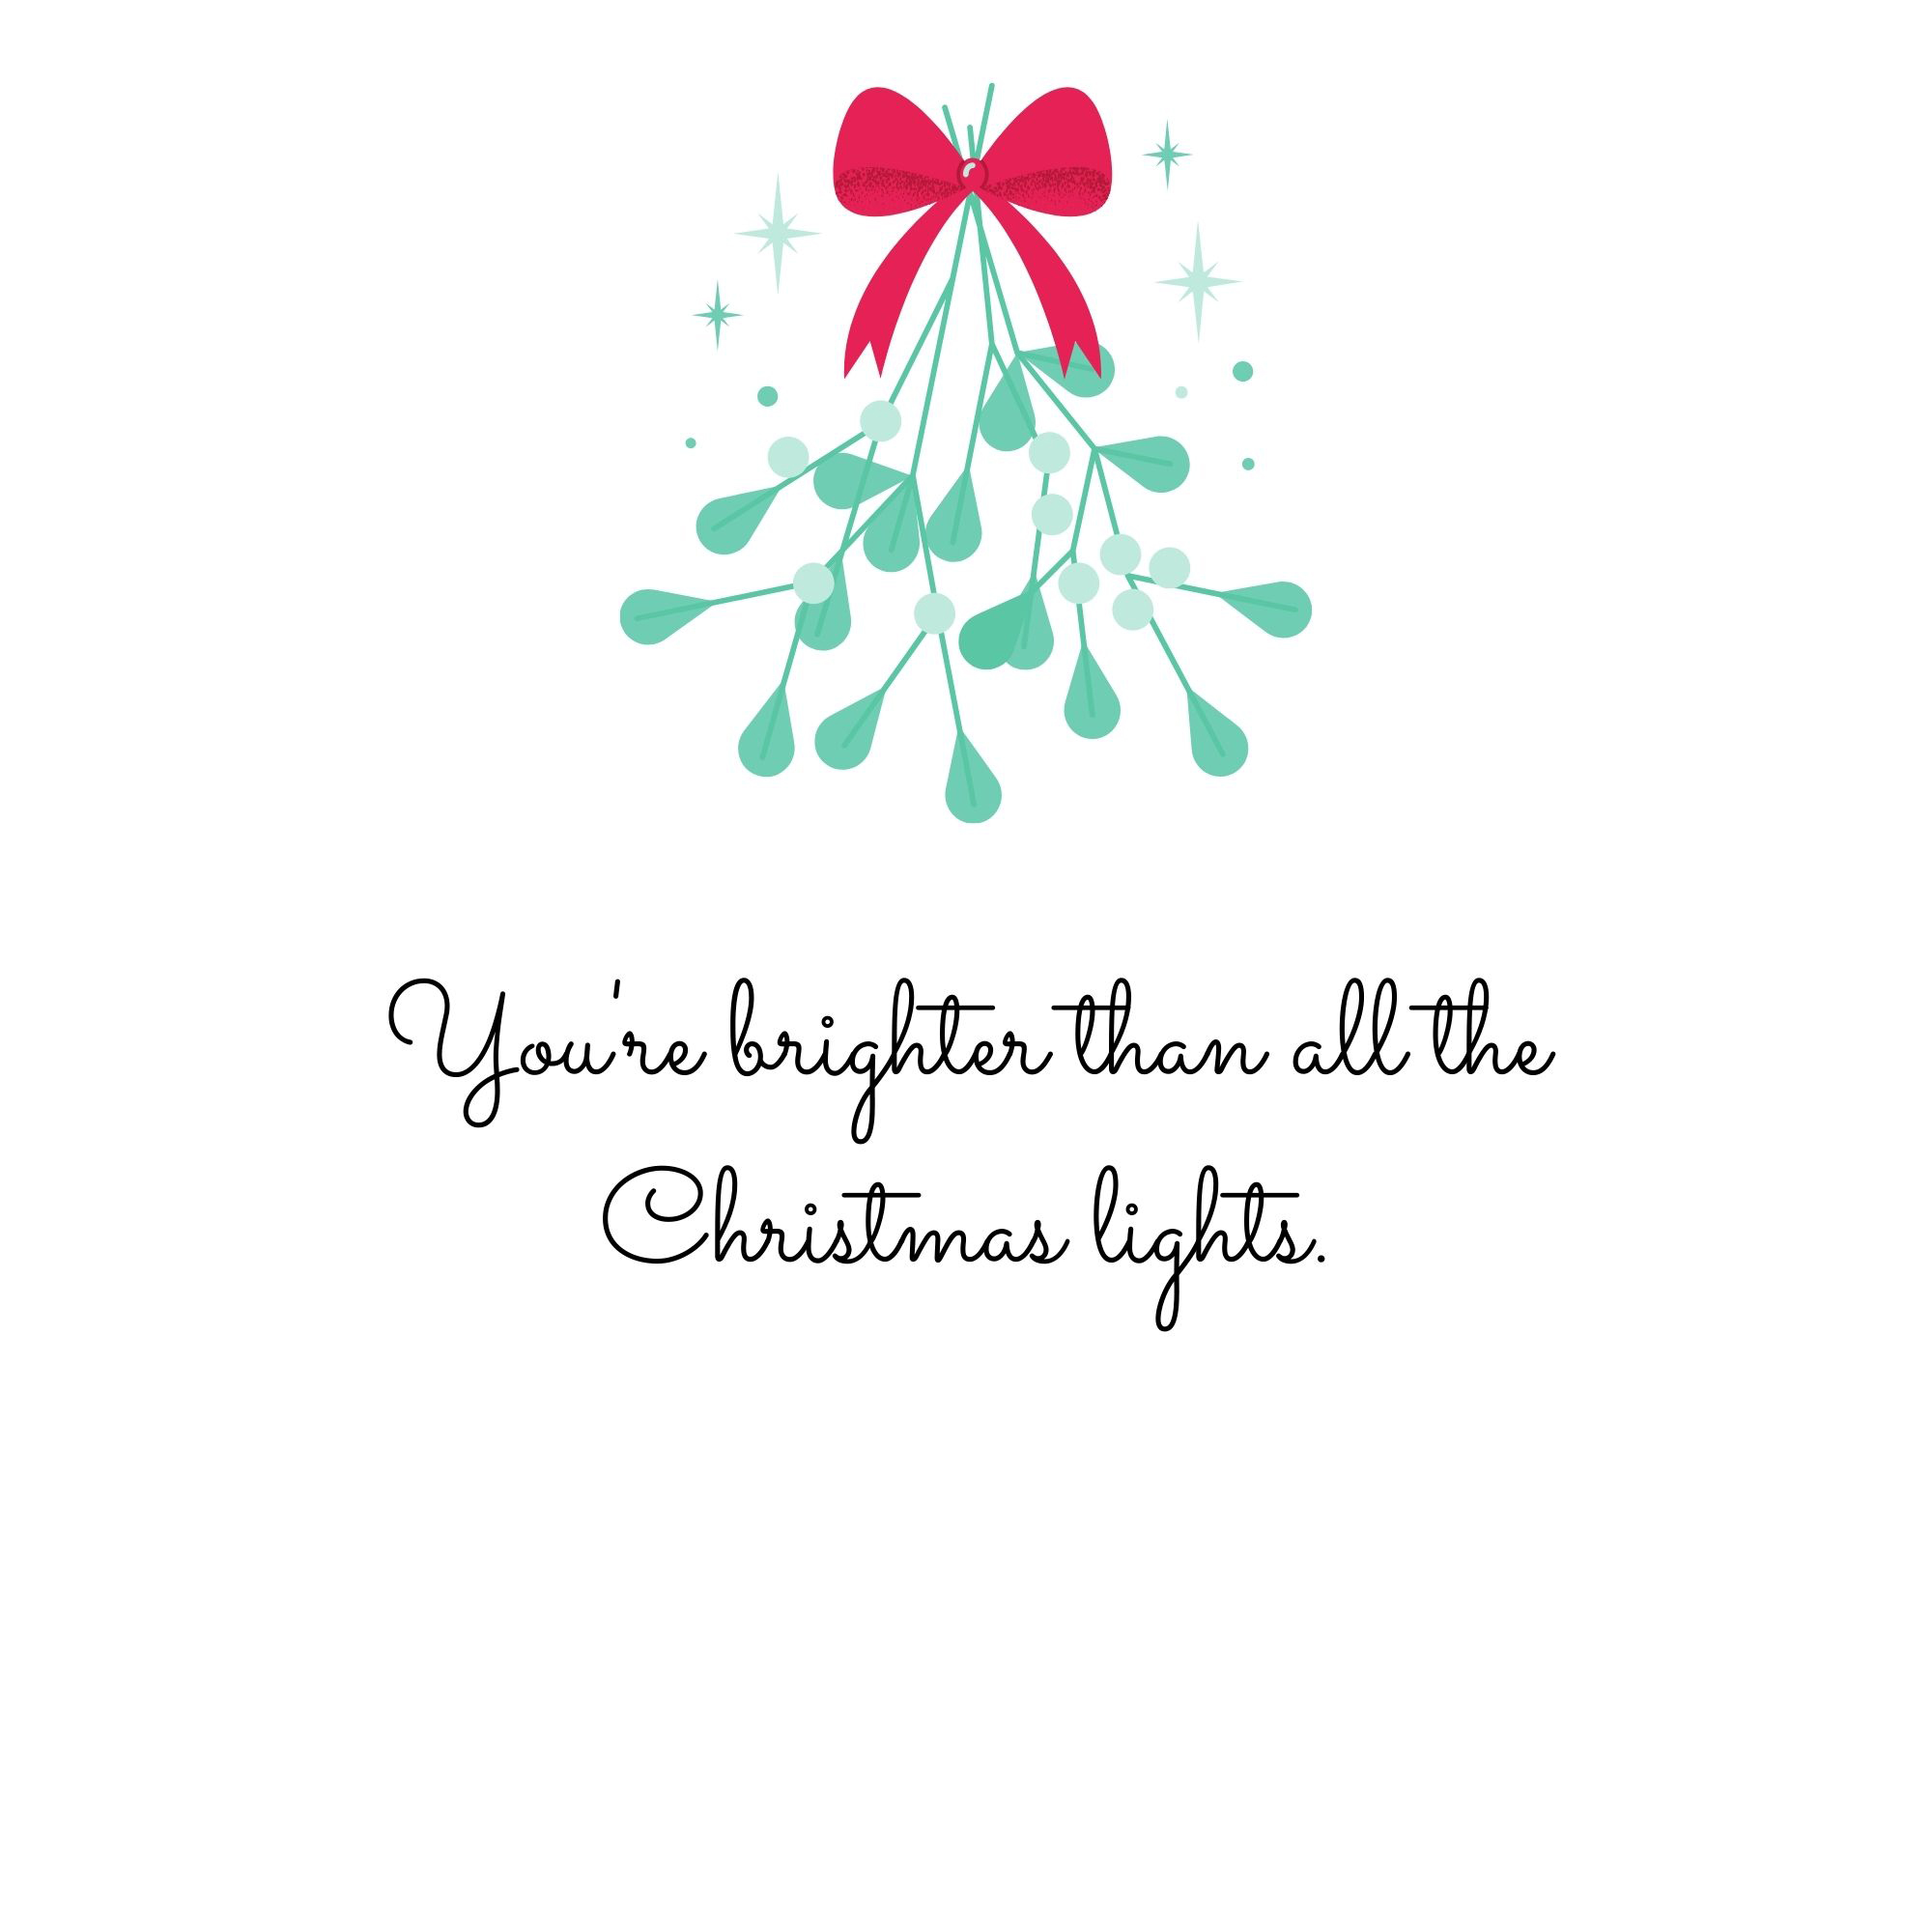 You're brighter than all the Christmas lights.